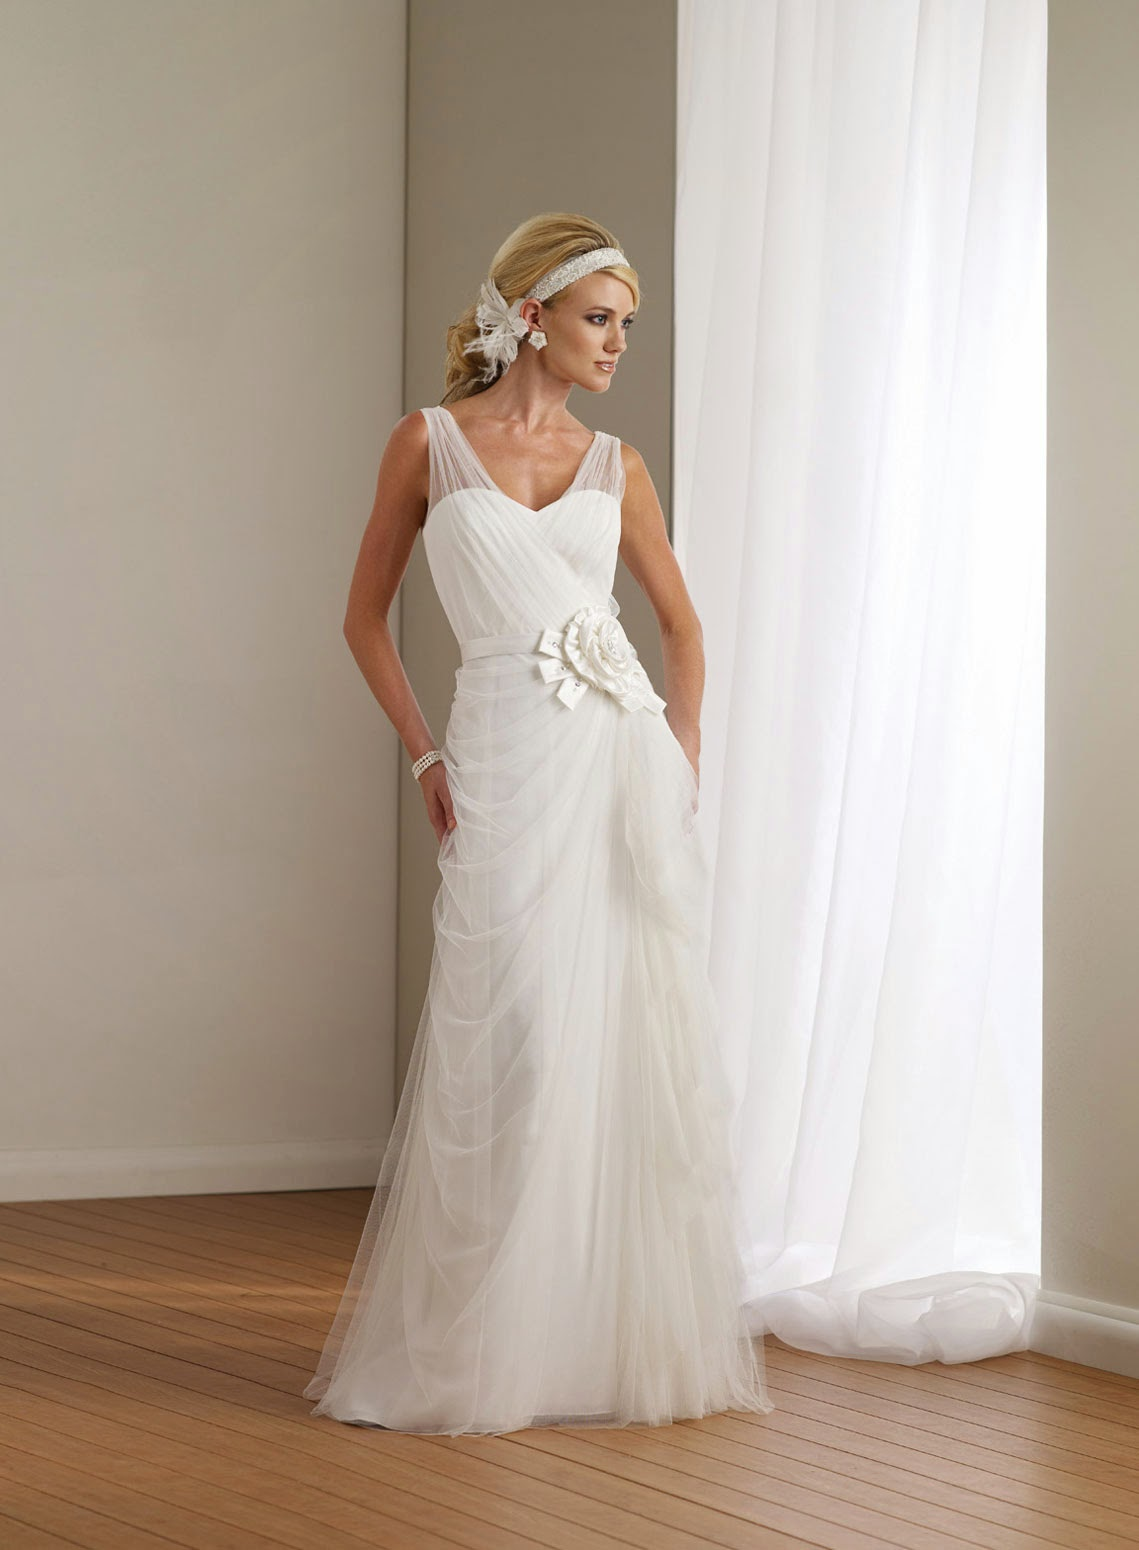 Casual White Wedding Dress With Sleeves Ideas Photos HD